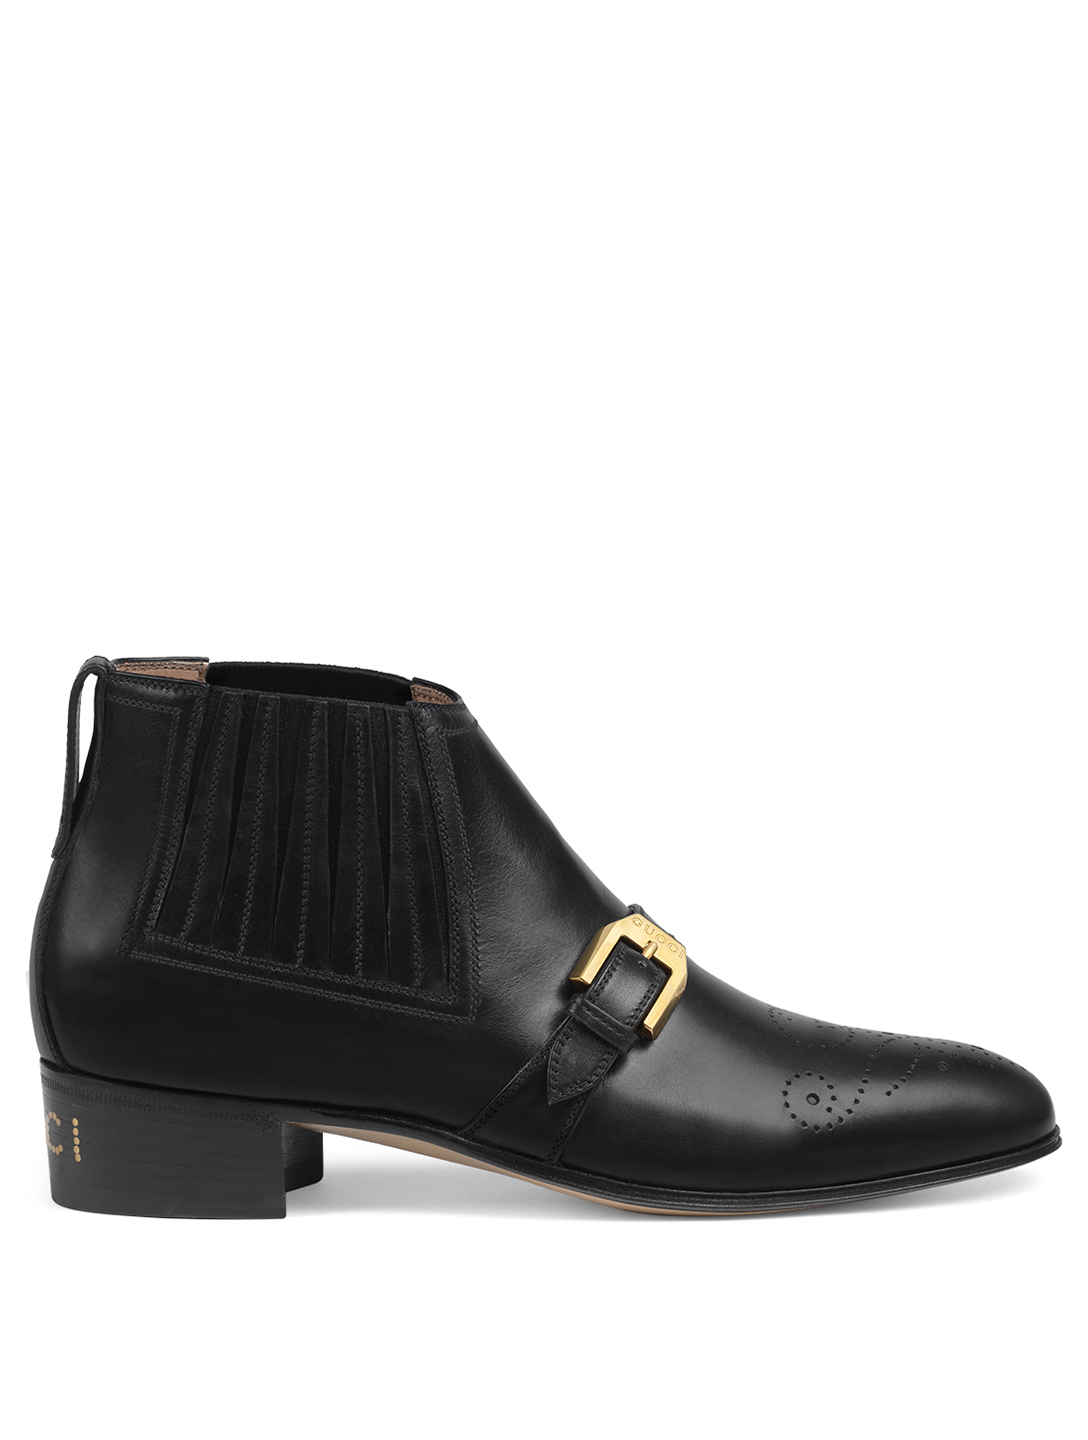 GUCCI Leather Ankle Boots With G Brogue Womens Black